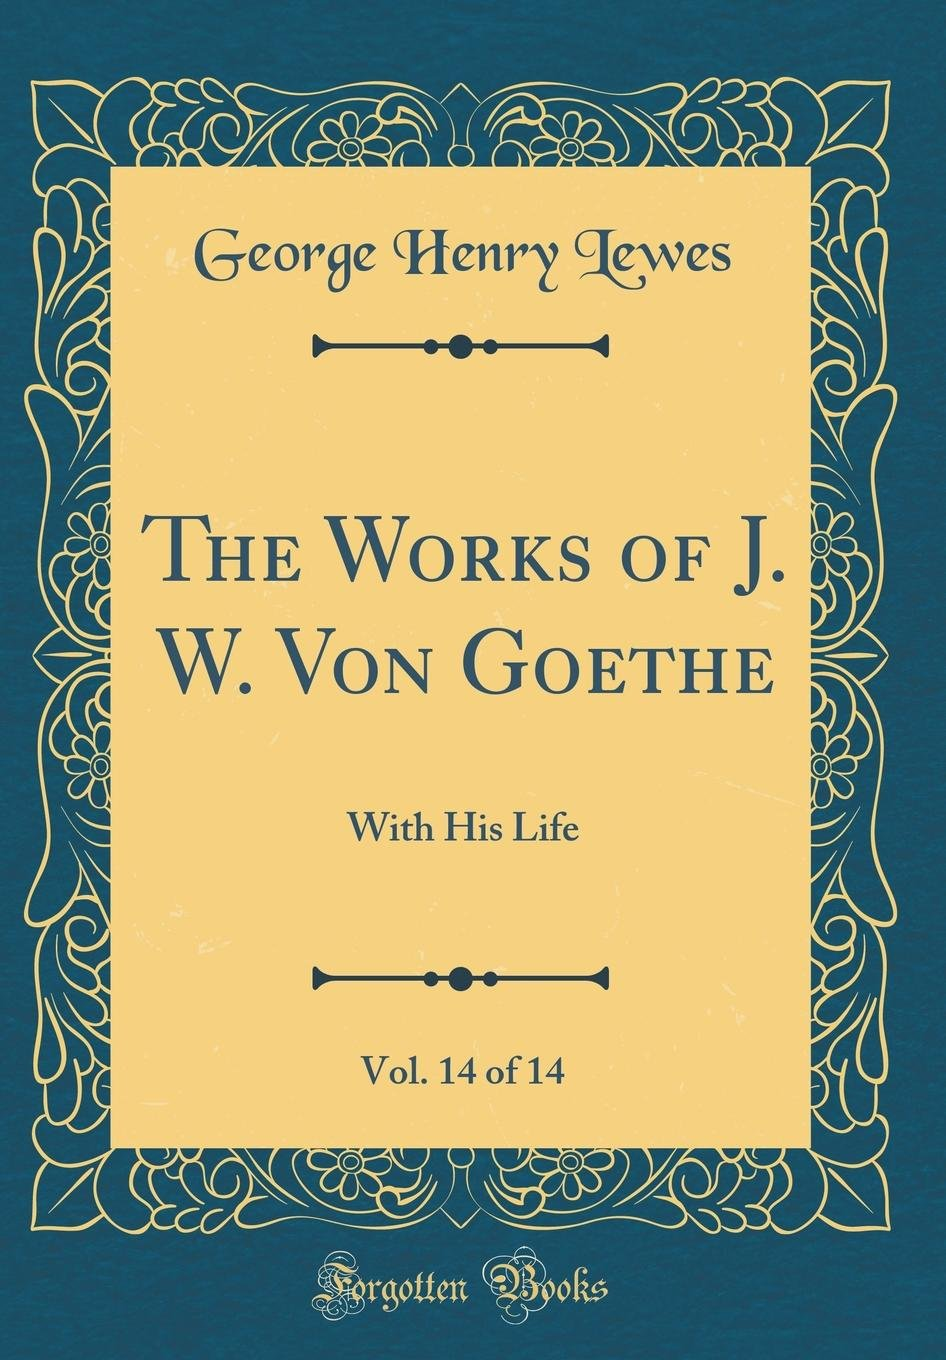 The Works of J. W. Von Goethe, Vol. 14 of 14: With His Life (Classic Reprint) pdf epub